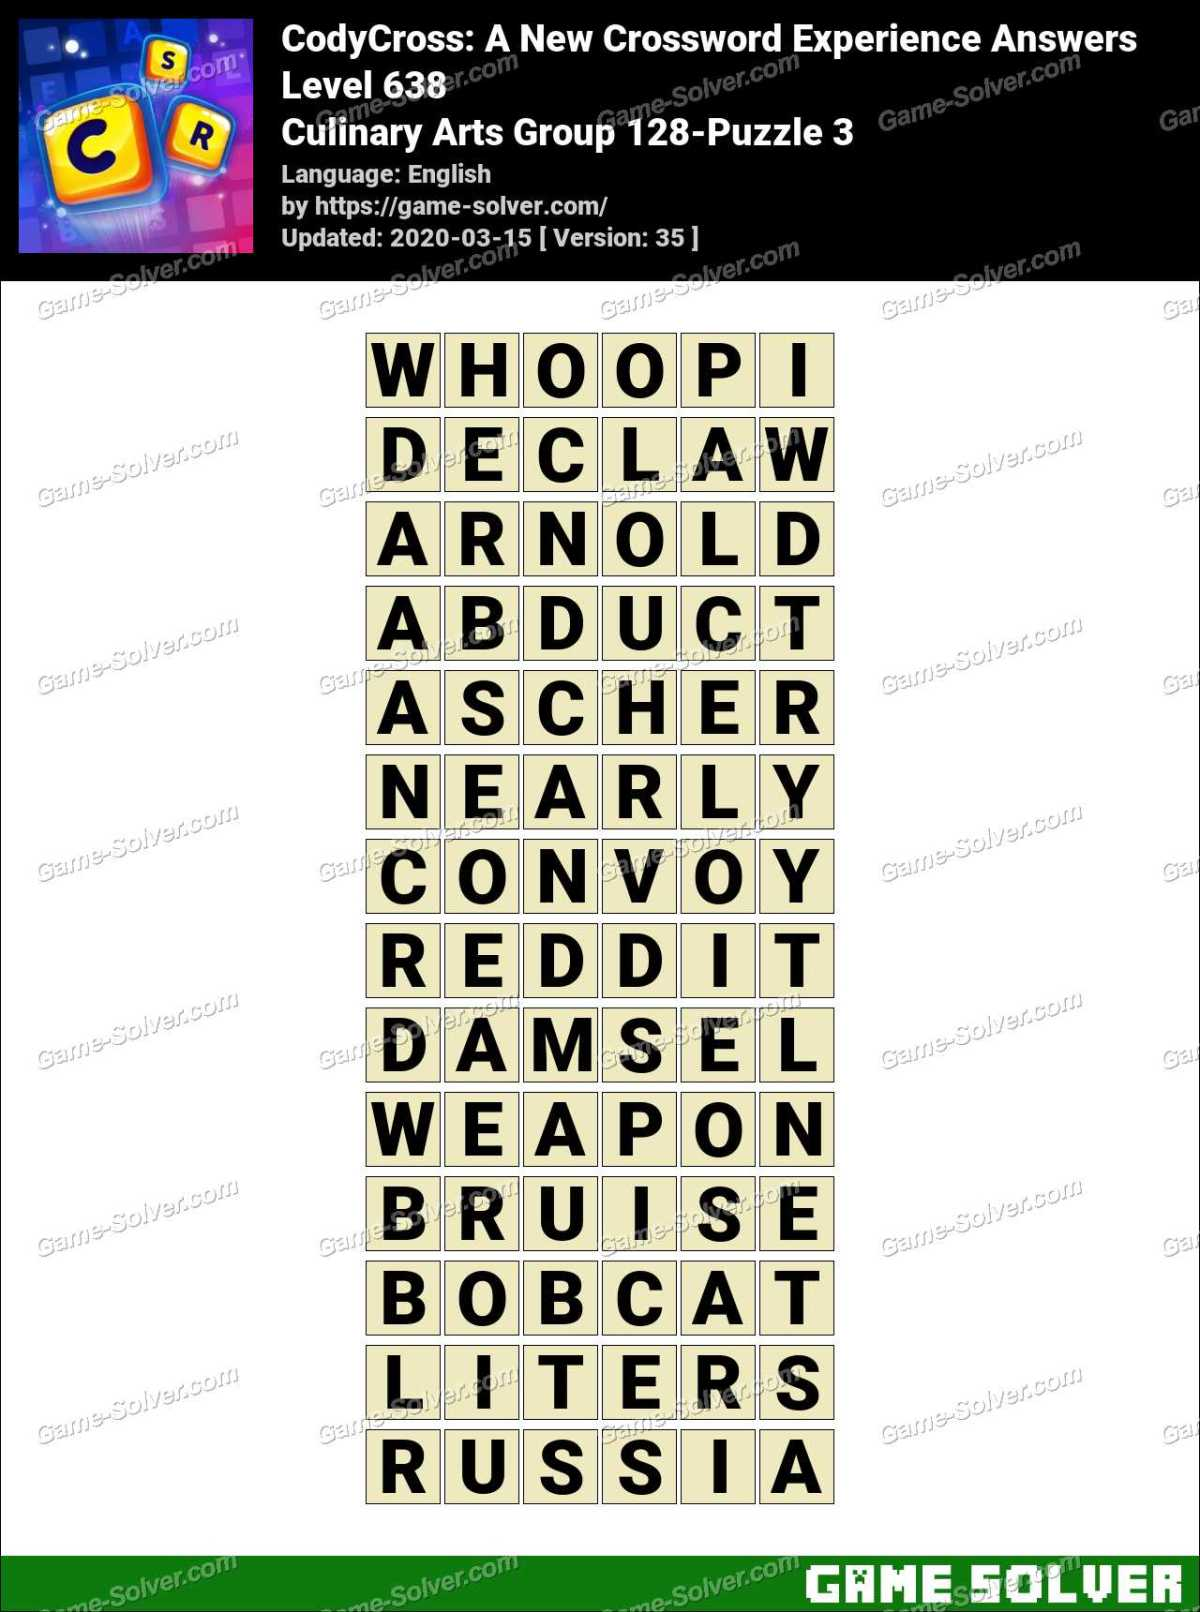 CodyCross Culinary Arts Group 128-Puzzle 3 Answers